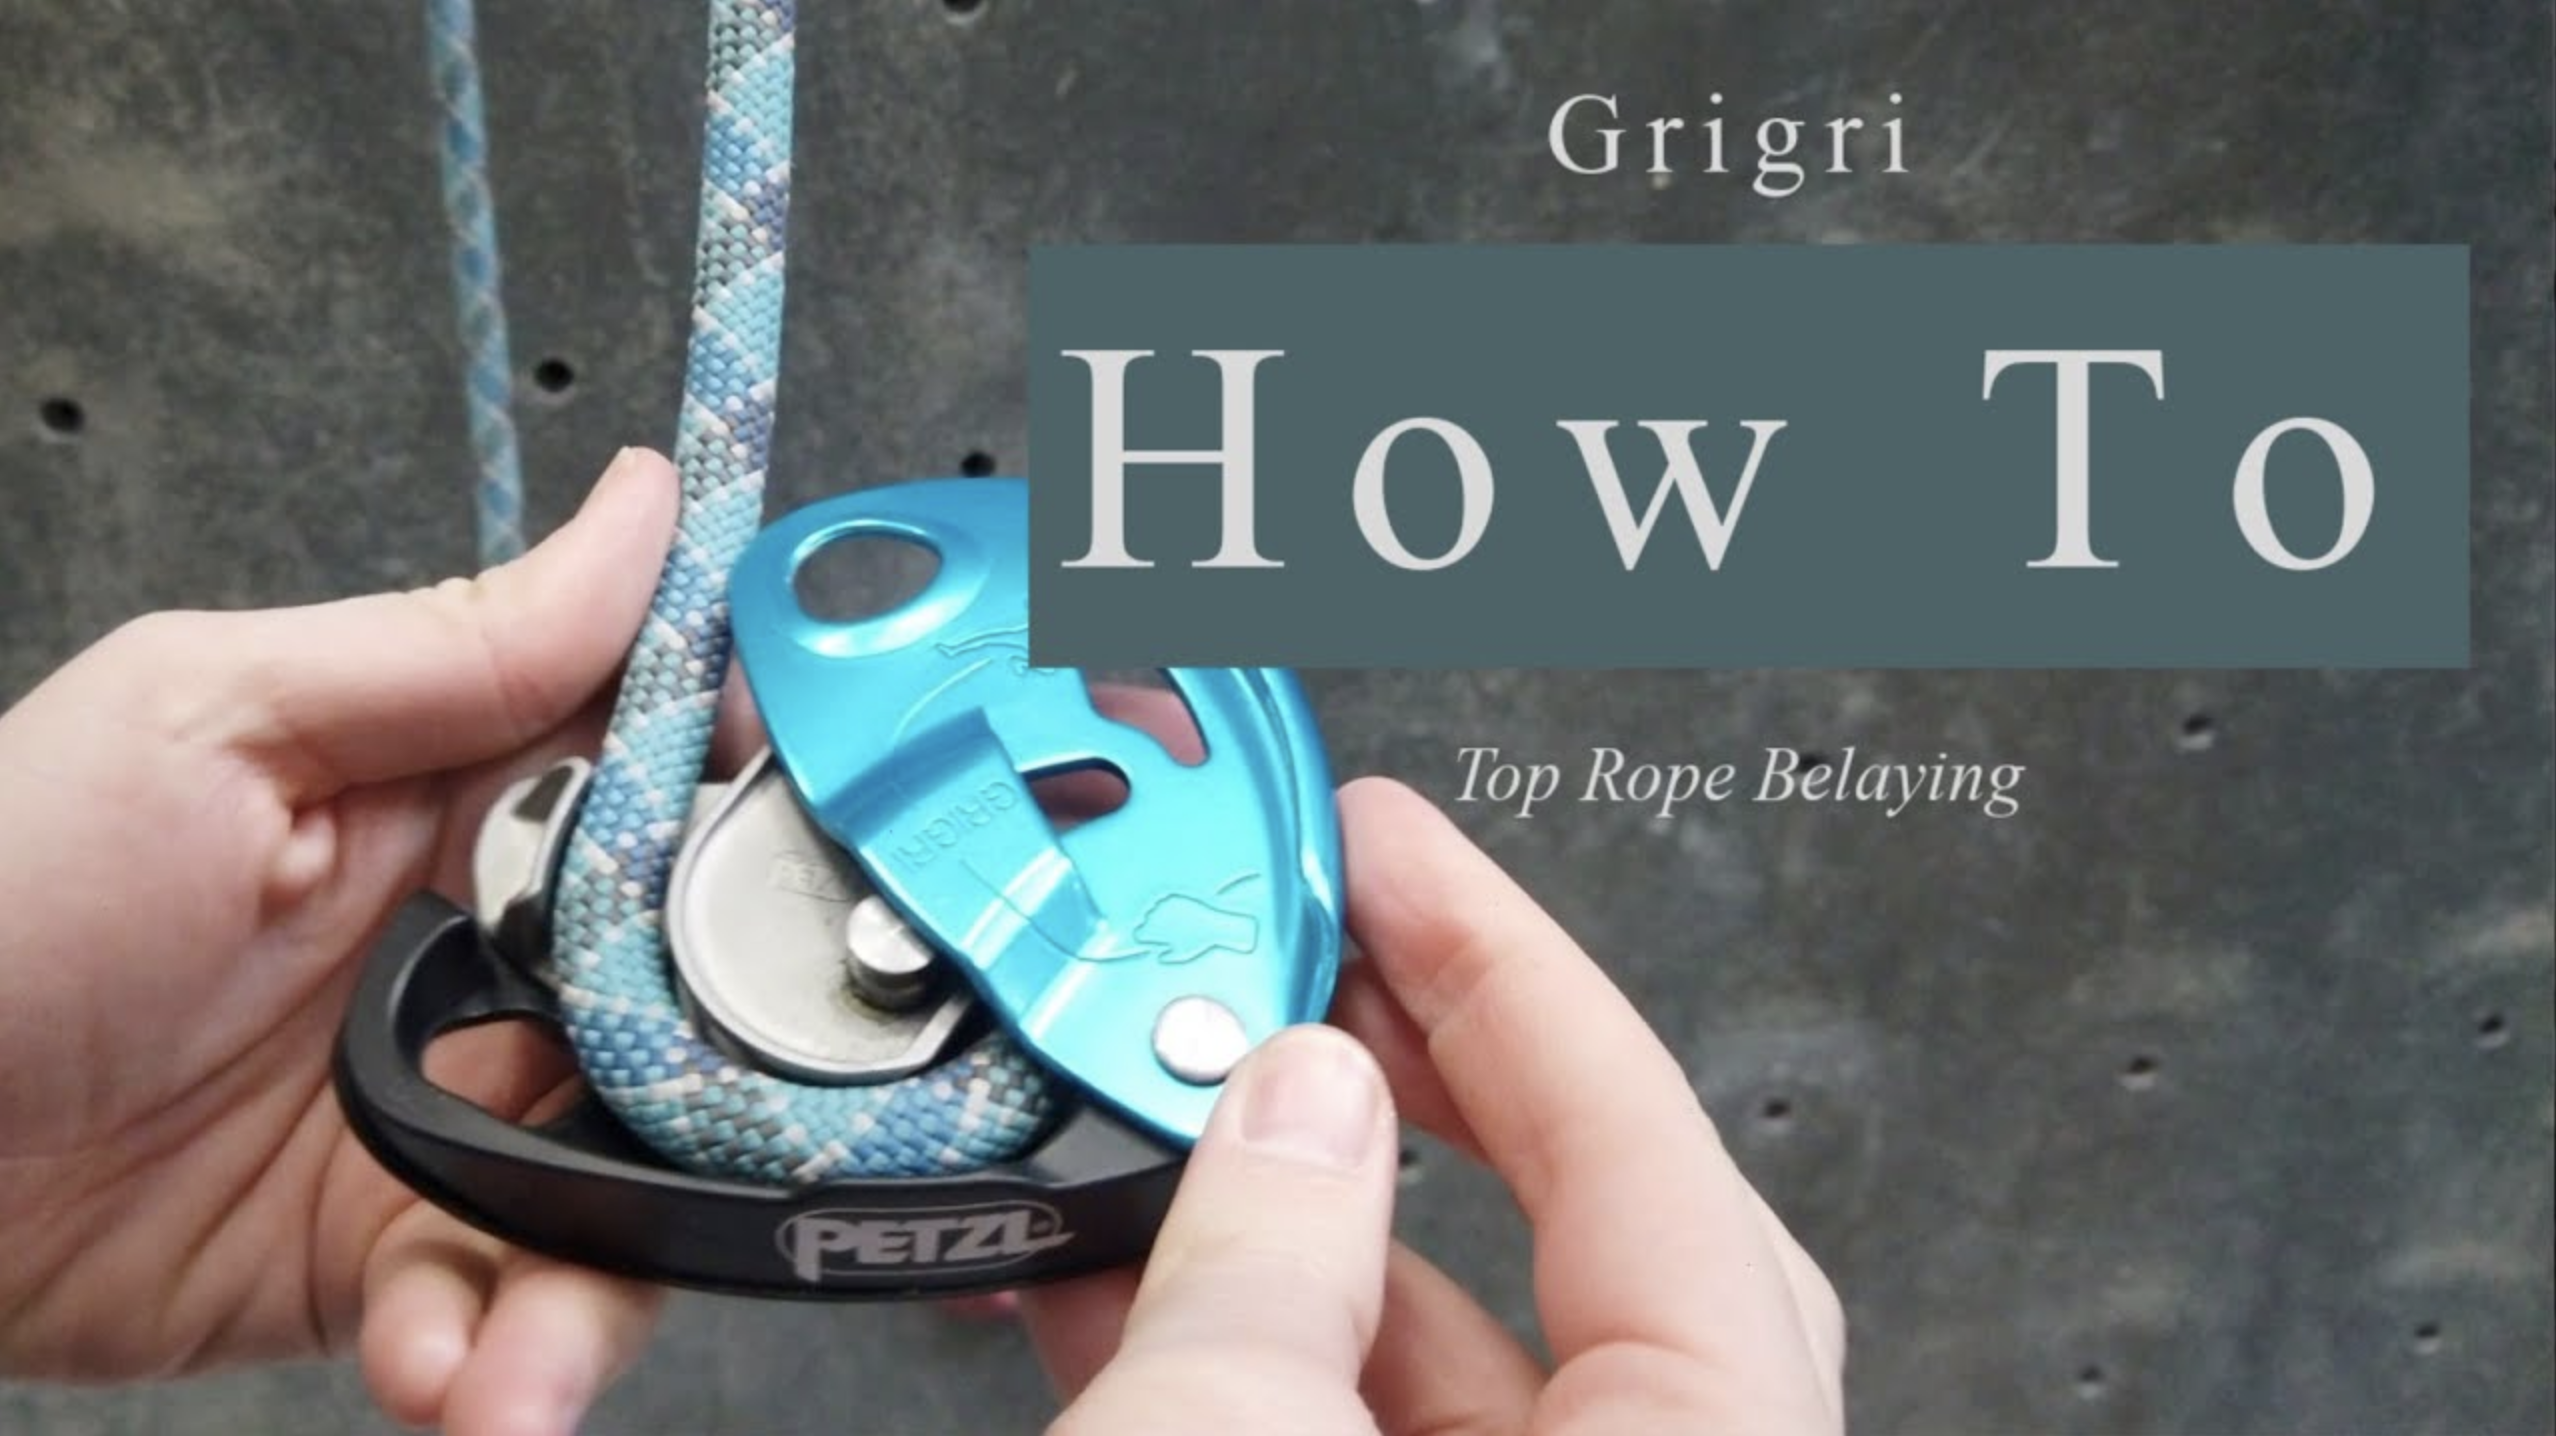 How To Belay With A Grigri For Top Rope Climbing   With photos and video